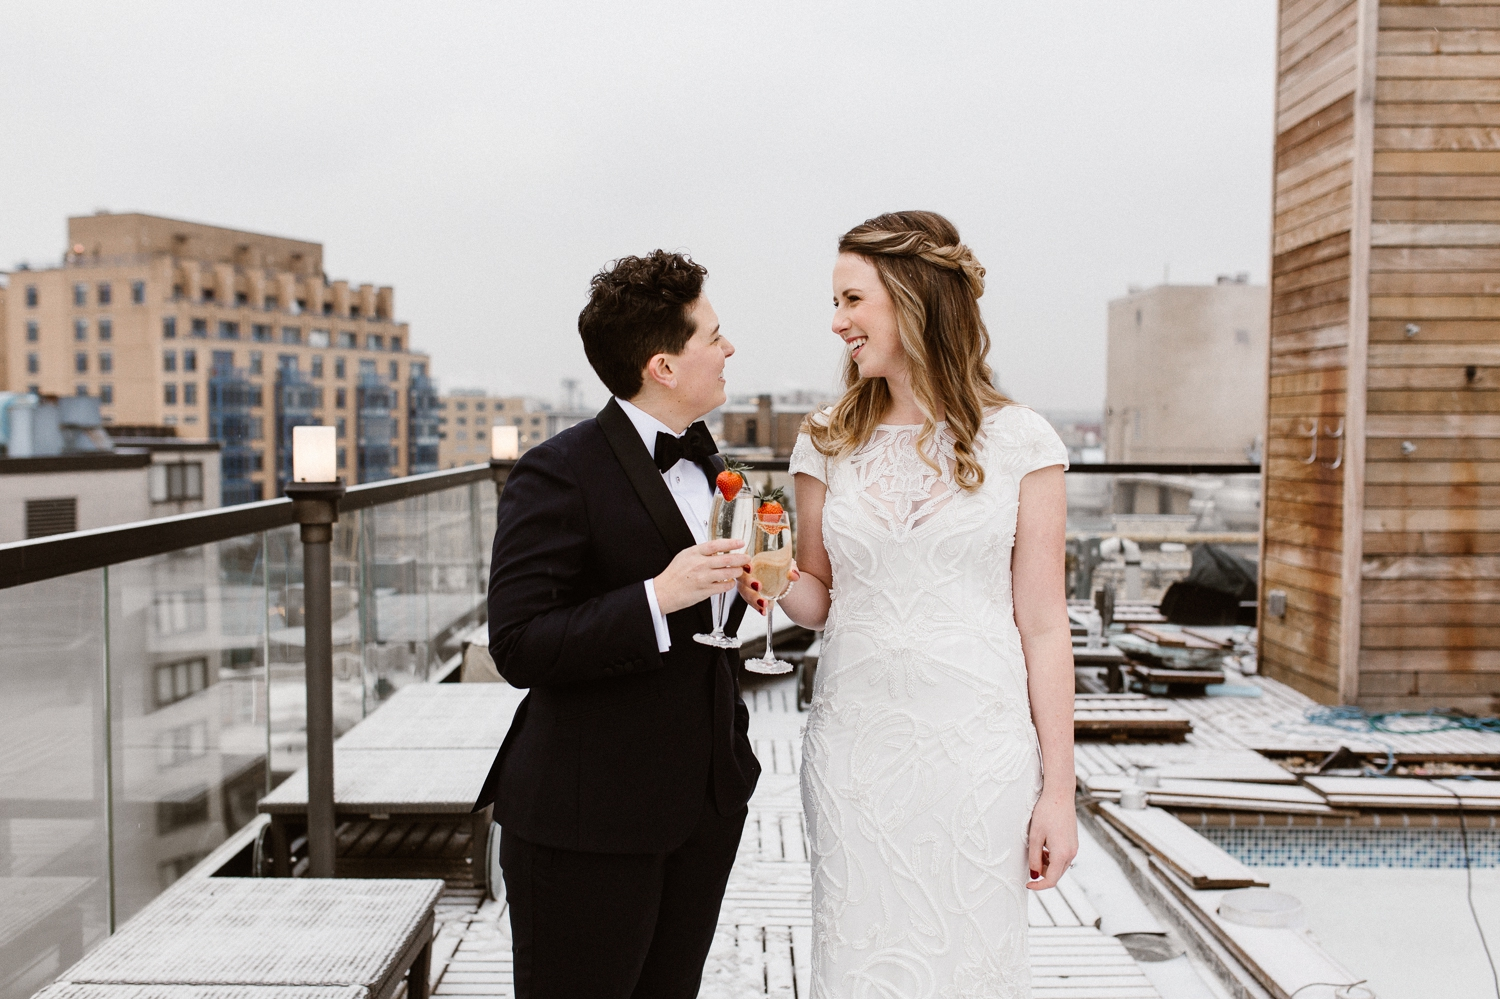 mason-and-rook-first-look-rooftop-josephine-butler-parks-wedding-photographer 62.jpg